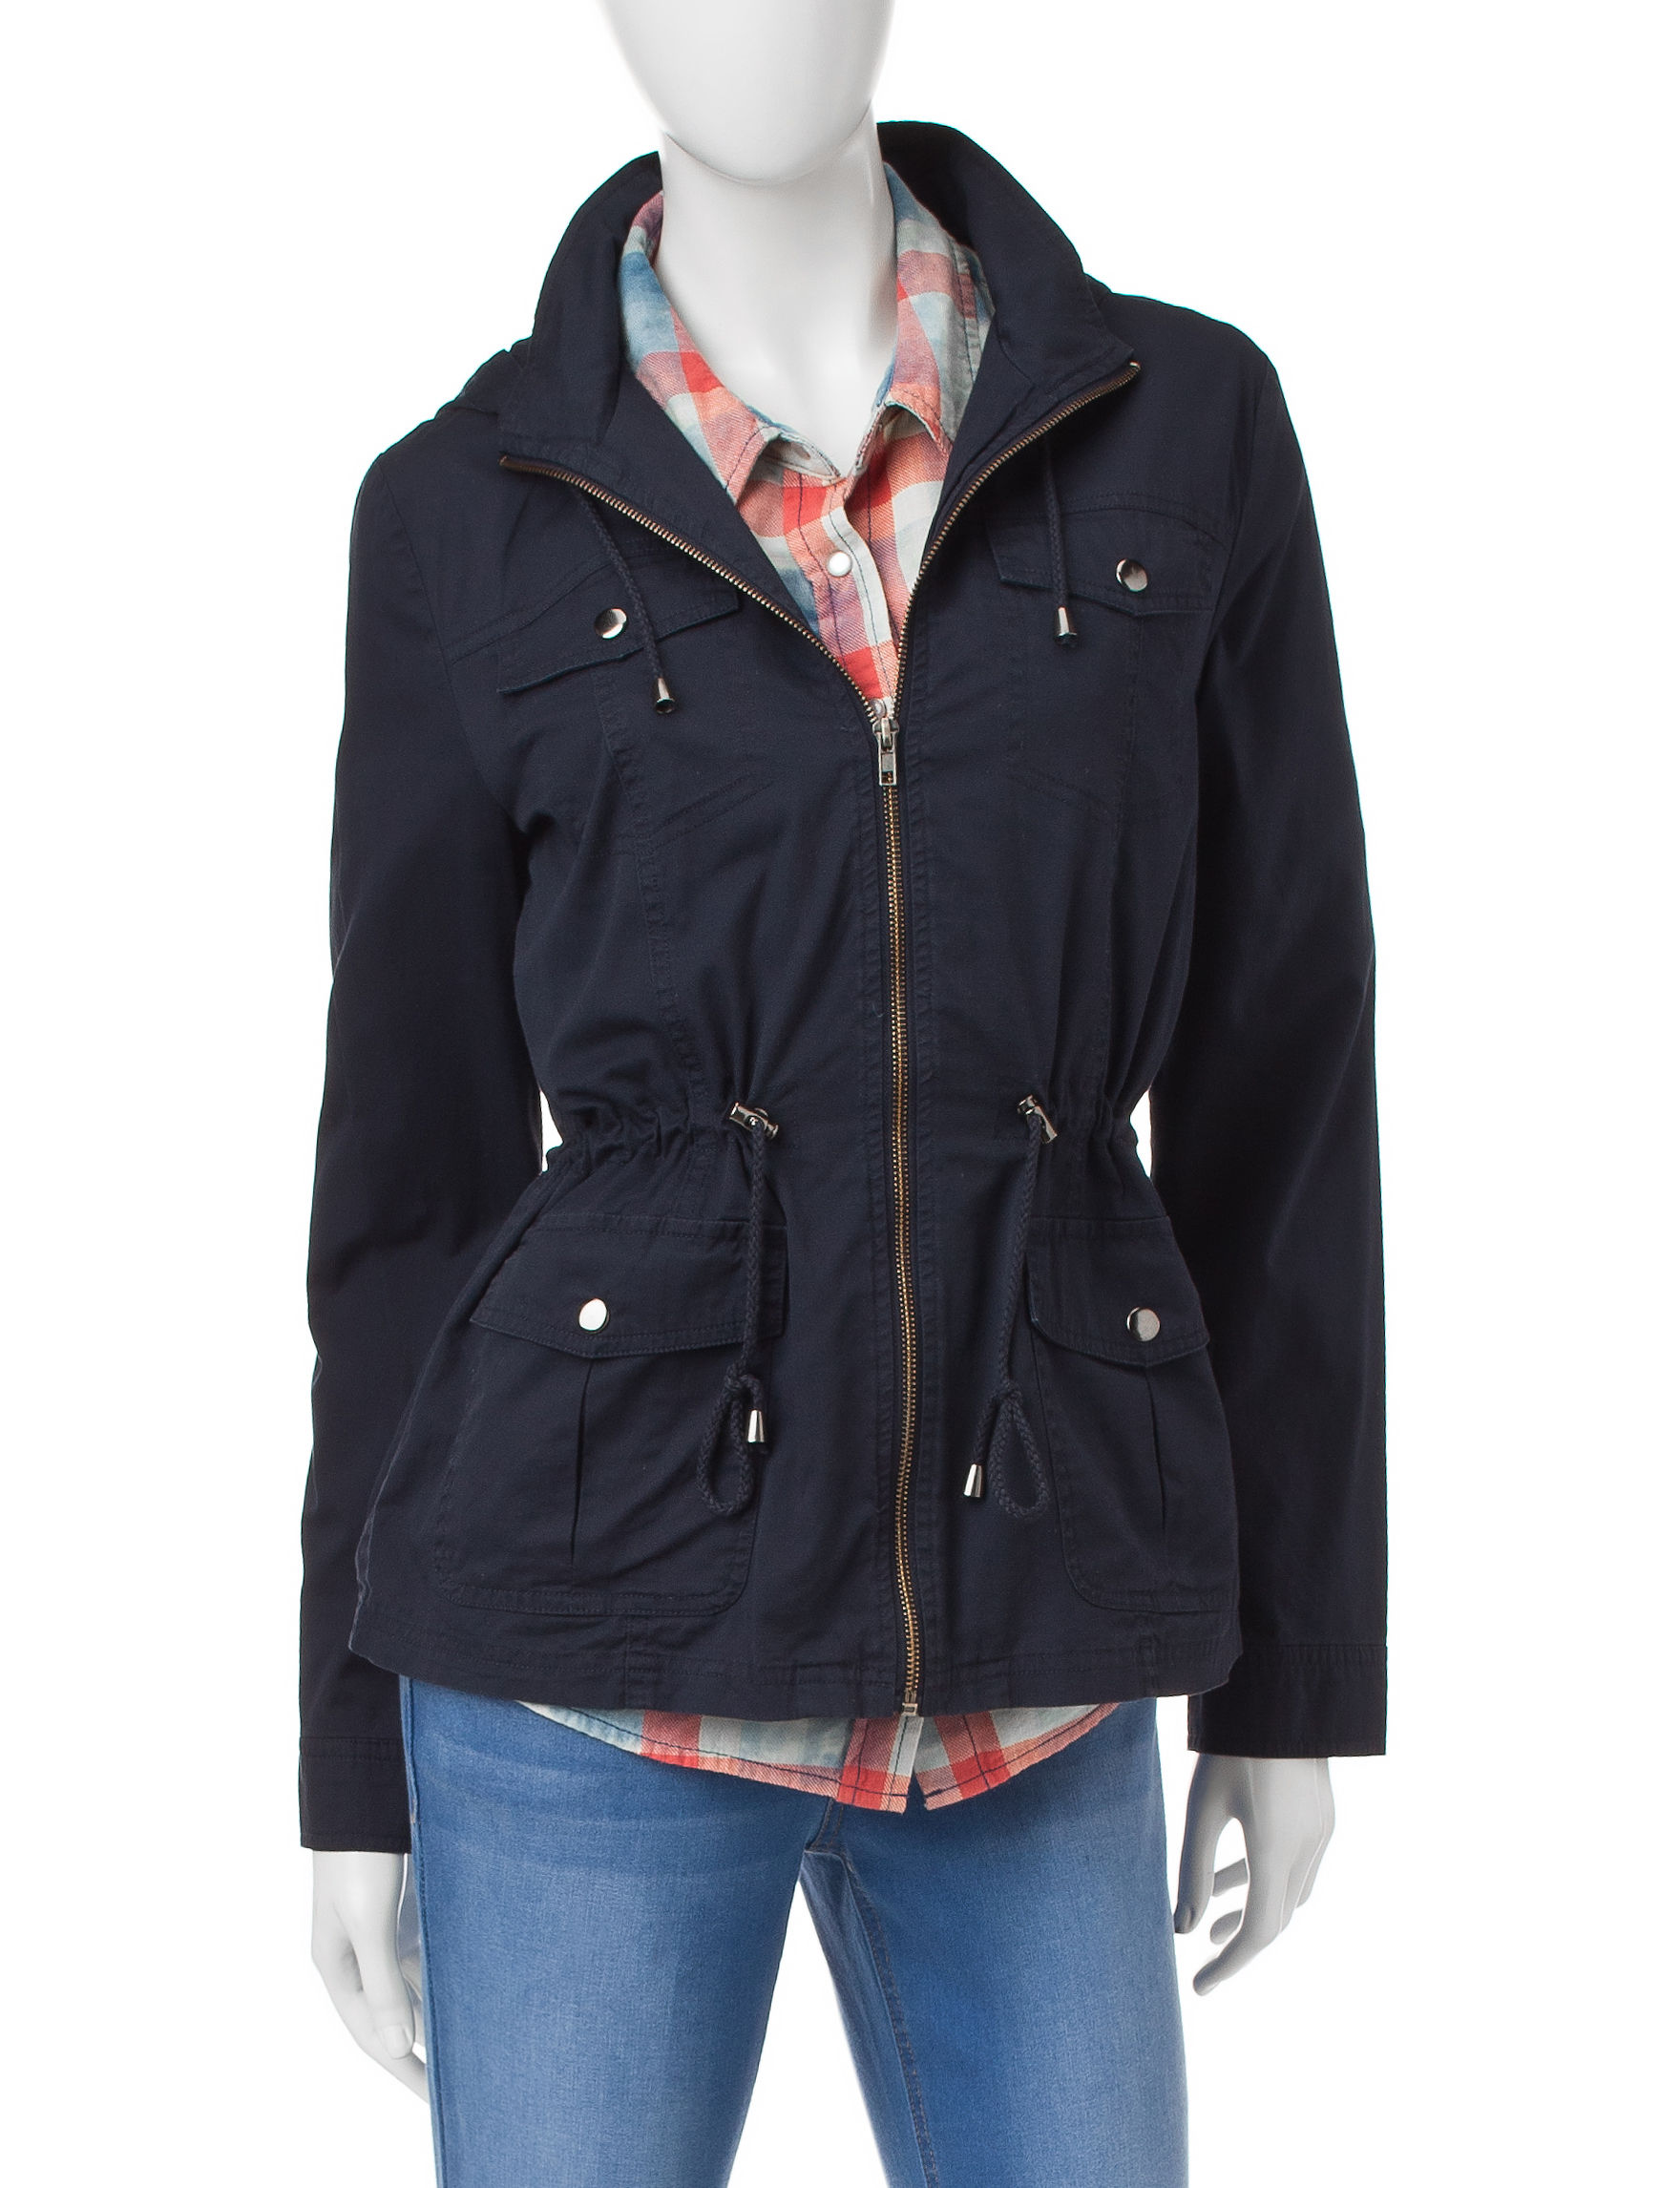 Ashley Navy Fleece & Soft Shell Jackets